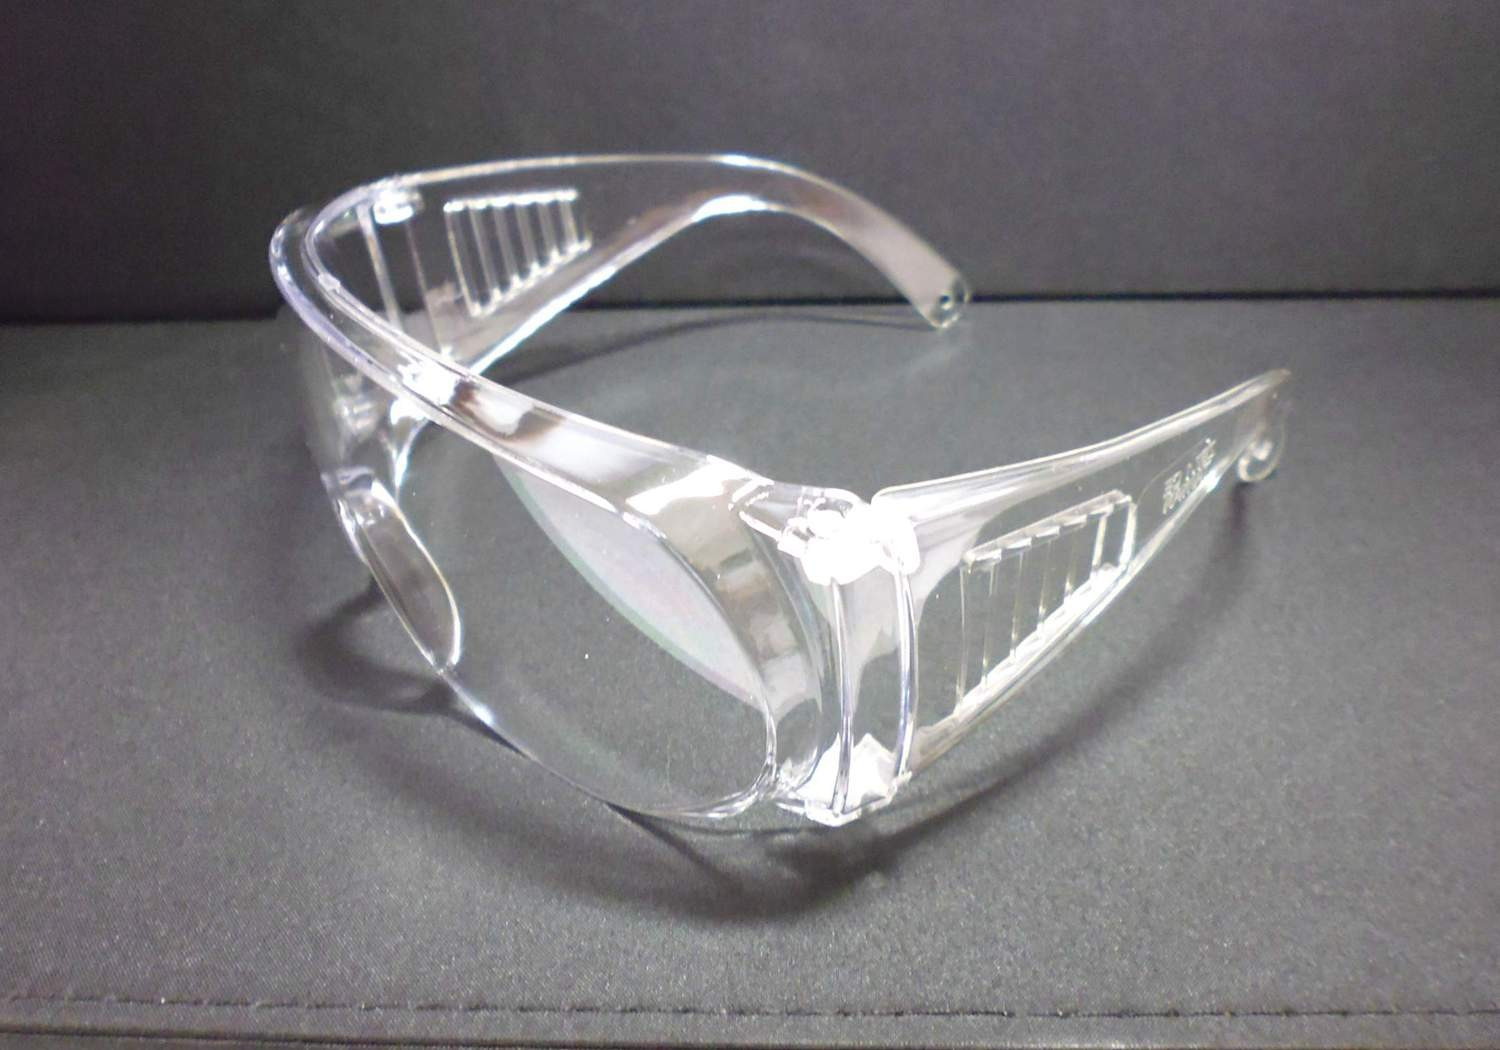 Z87- Safety Glasses, Safety Goggles-Well coverage